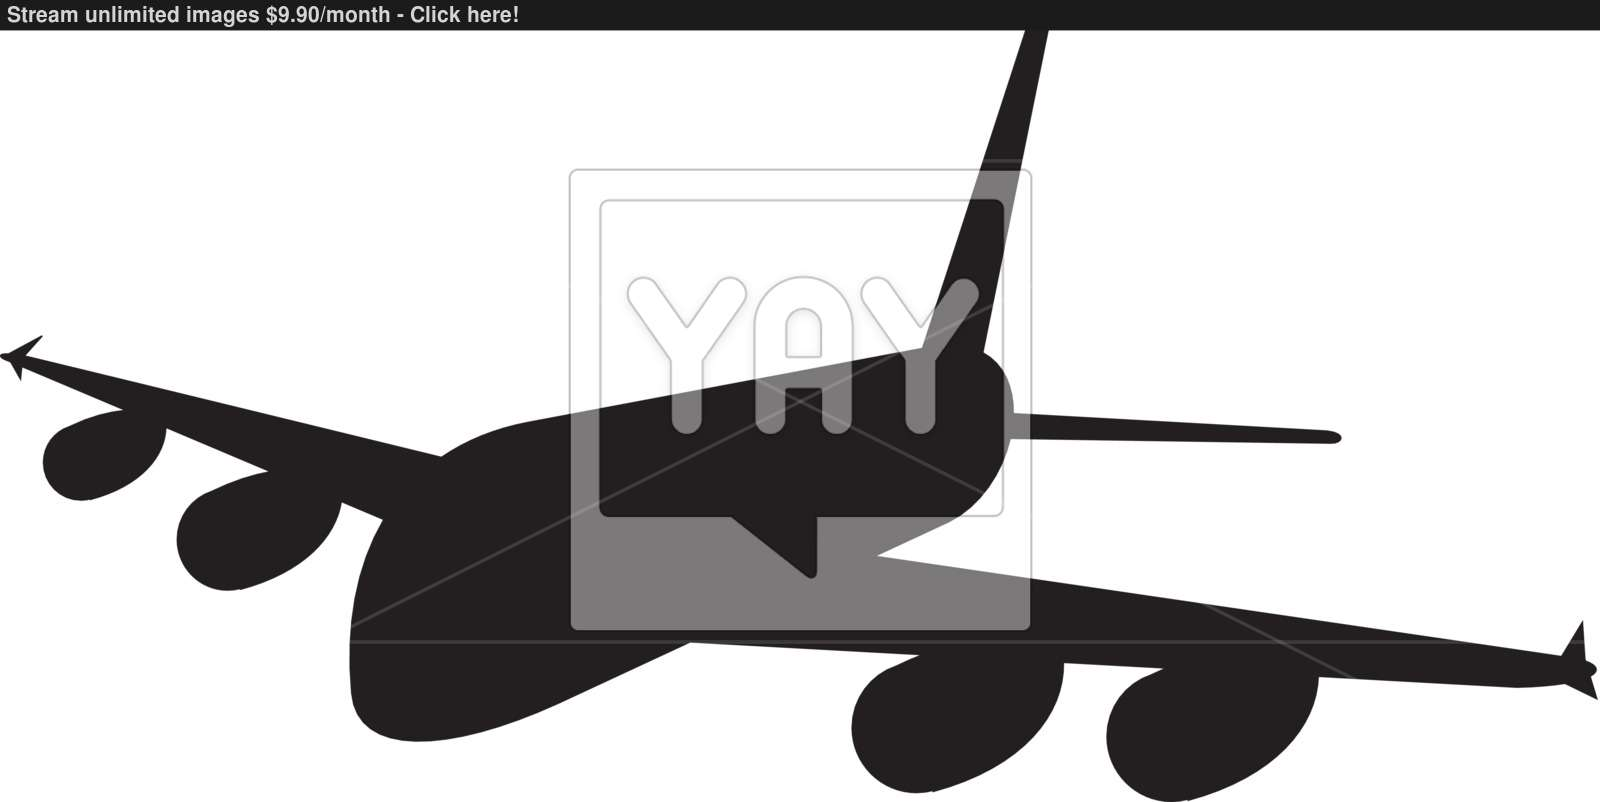 1600x802 Commercial Jet Plane Airline Silhouette Vector